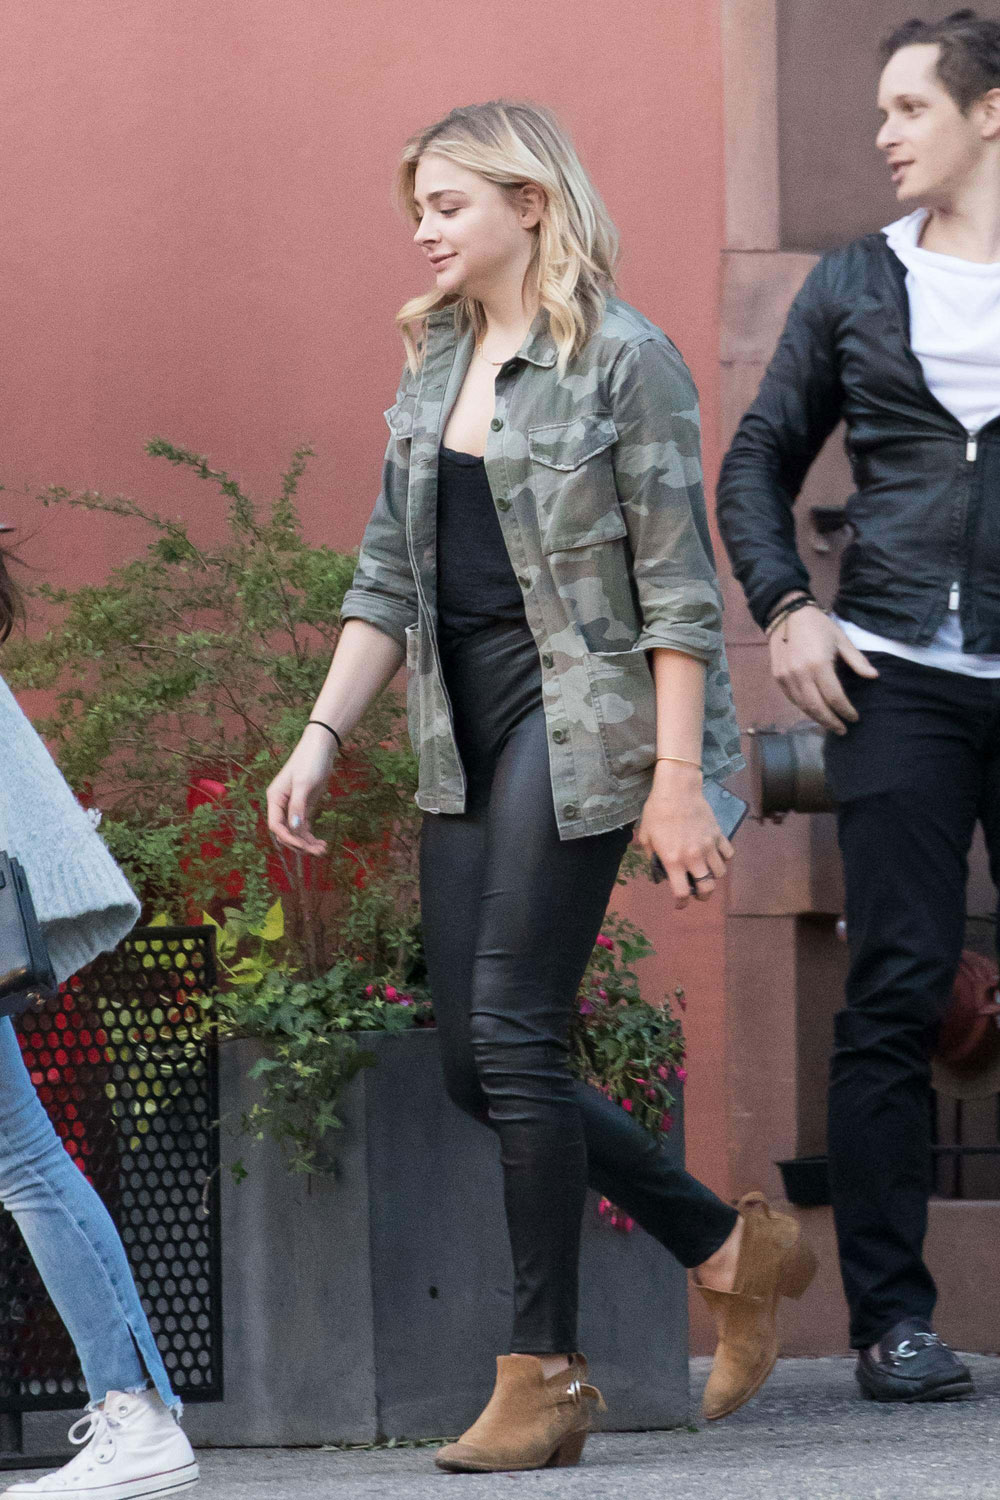 Chloe Moretz out and about in SoHo